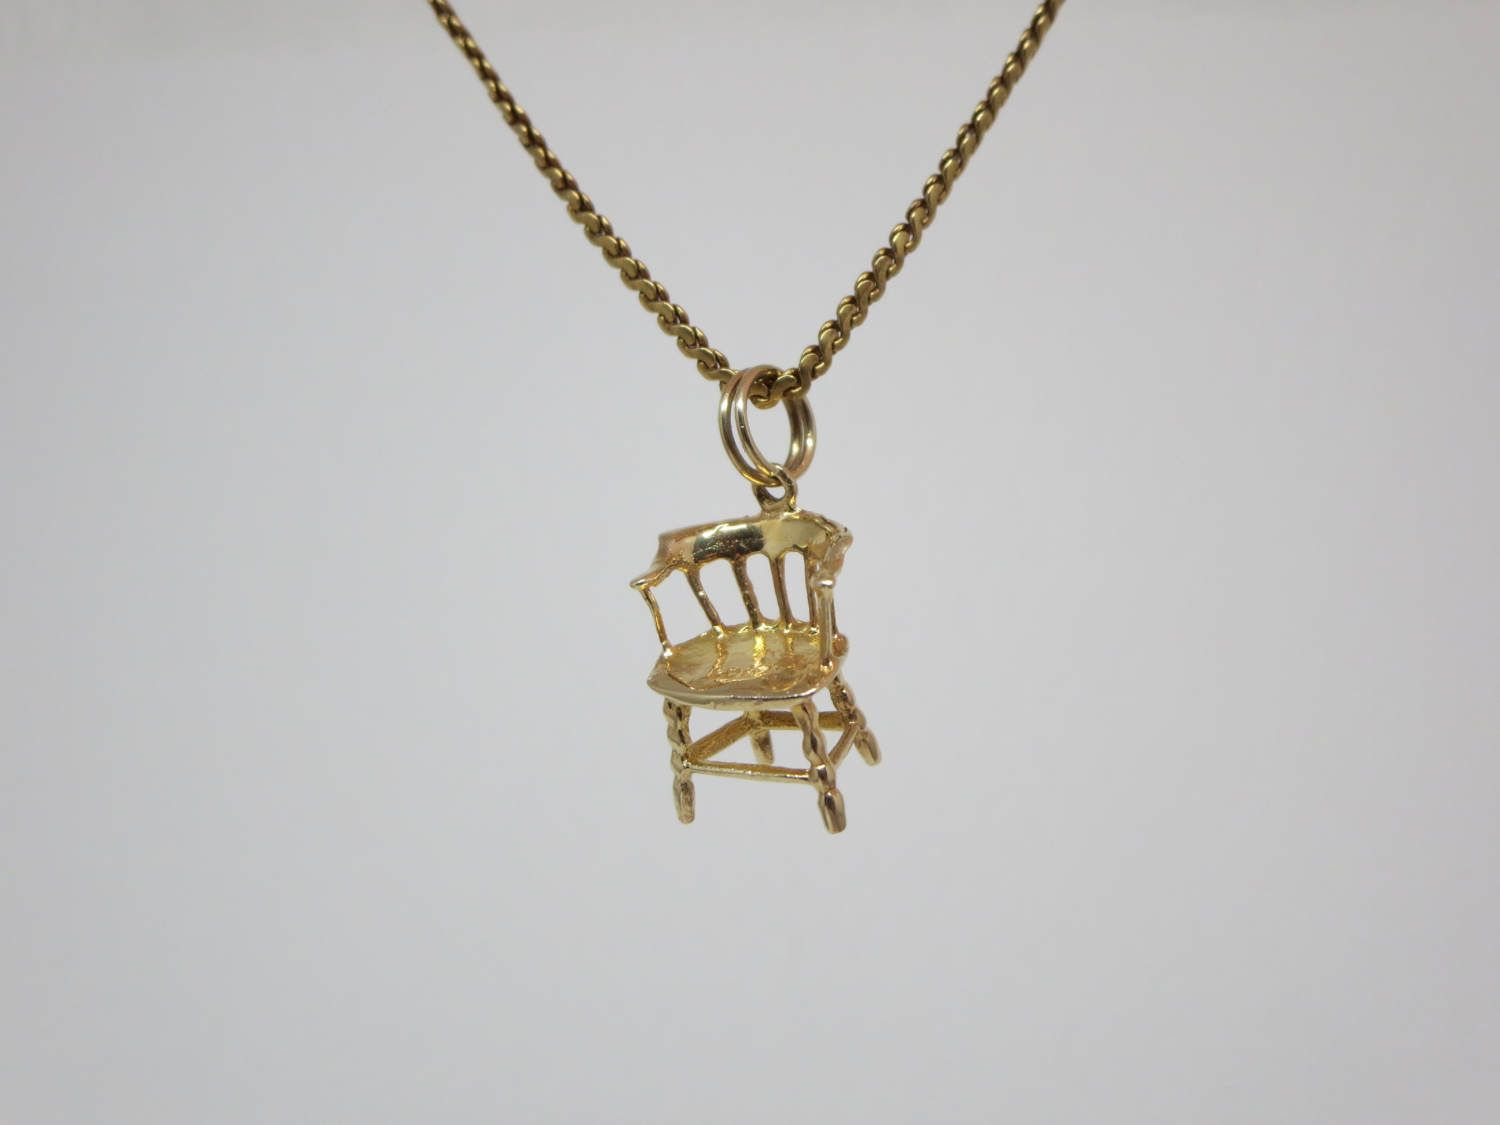 10k Gold Miniature Old Style Chair Pendant Very Realistic Patterns Spiral Ring For Easy Attachment To A Charm Br 10k Gold Gold Pendant Necklace Pendant Jewelry